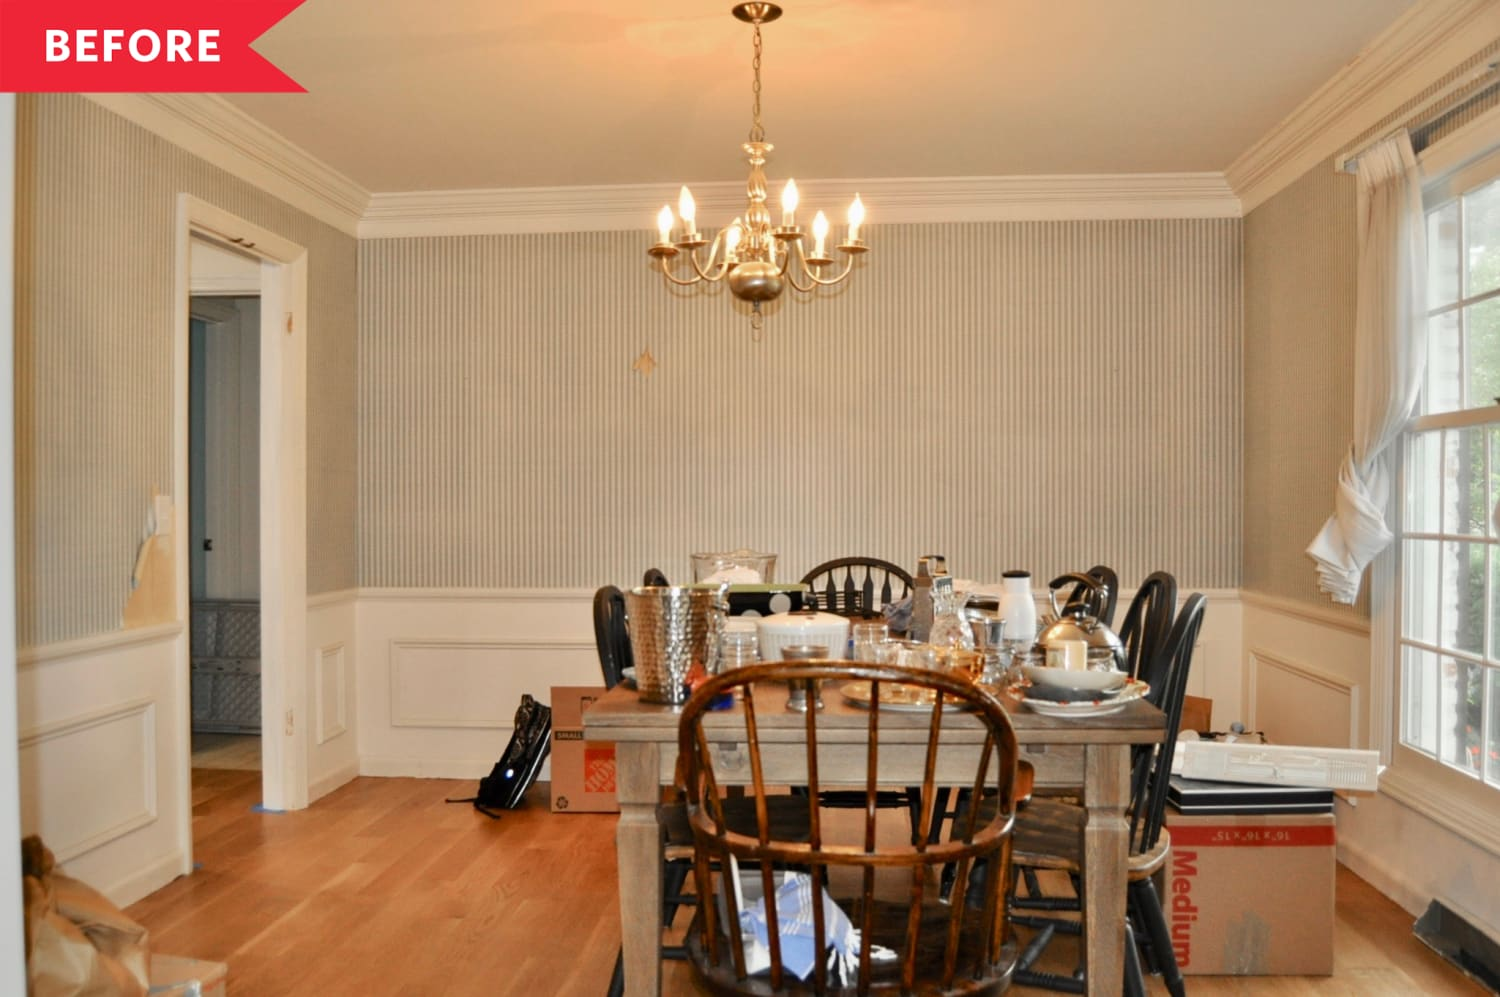 """Before & After: This Dining Room Now Has Major """"Hang Out Here"""" Vibes"""